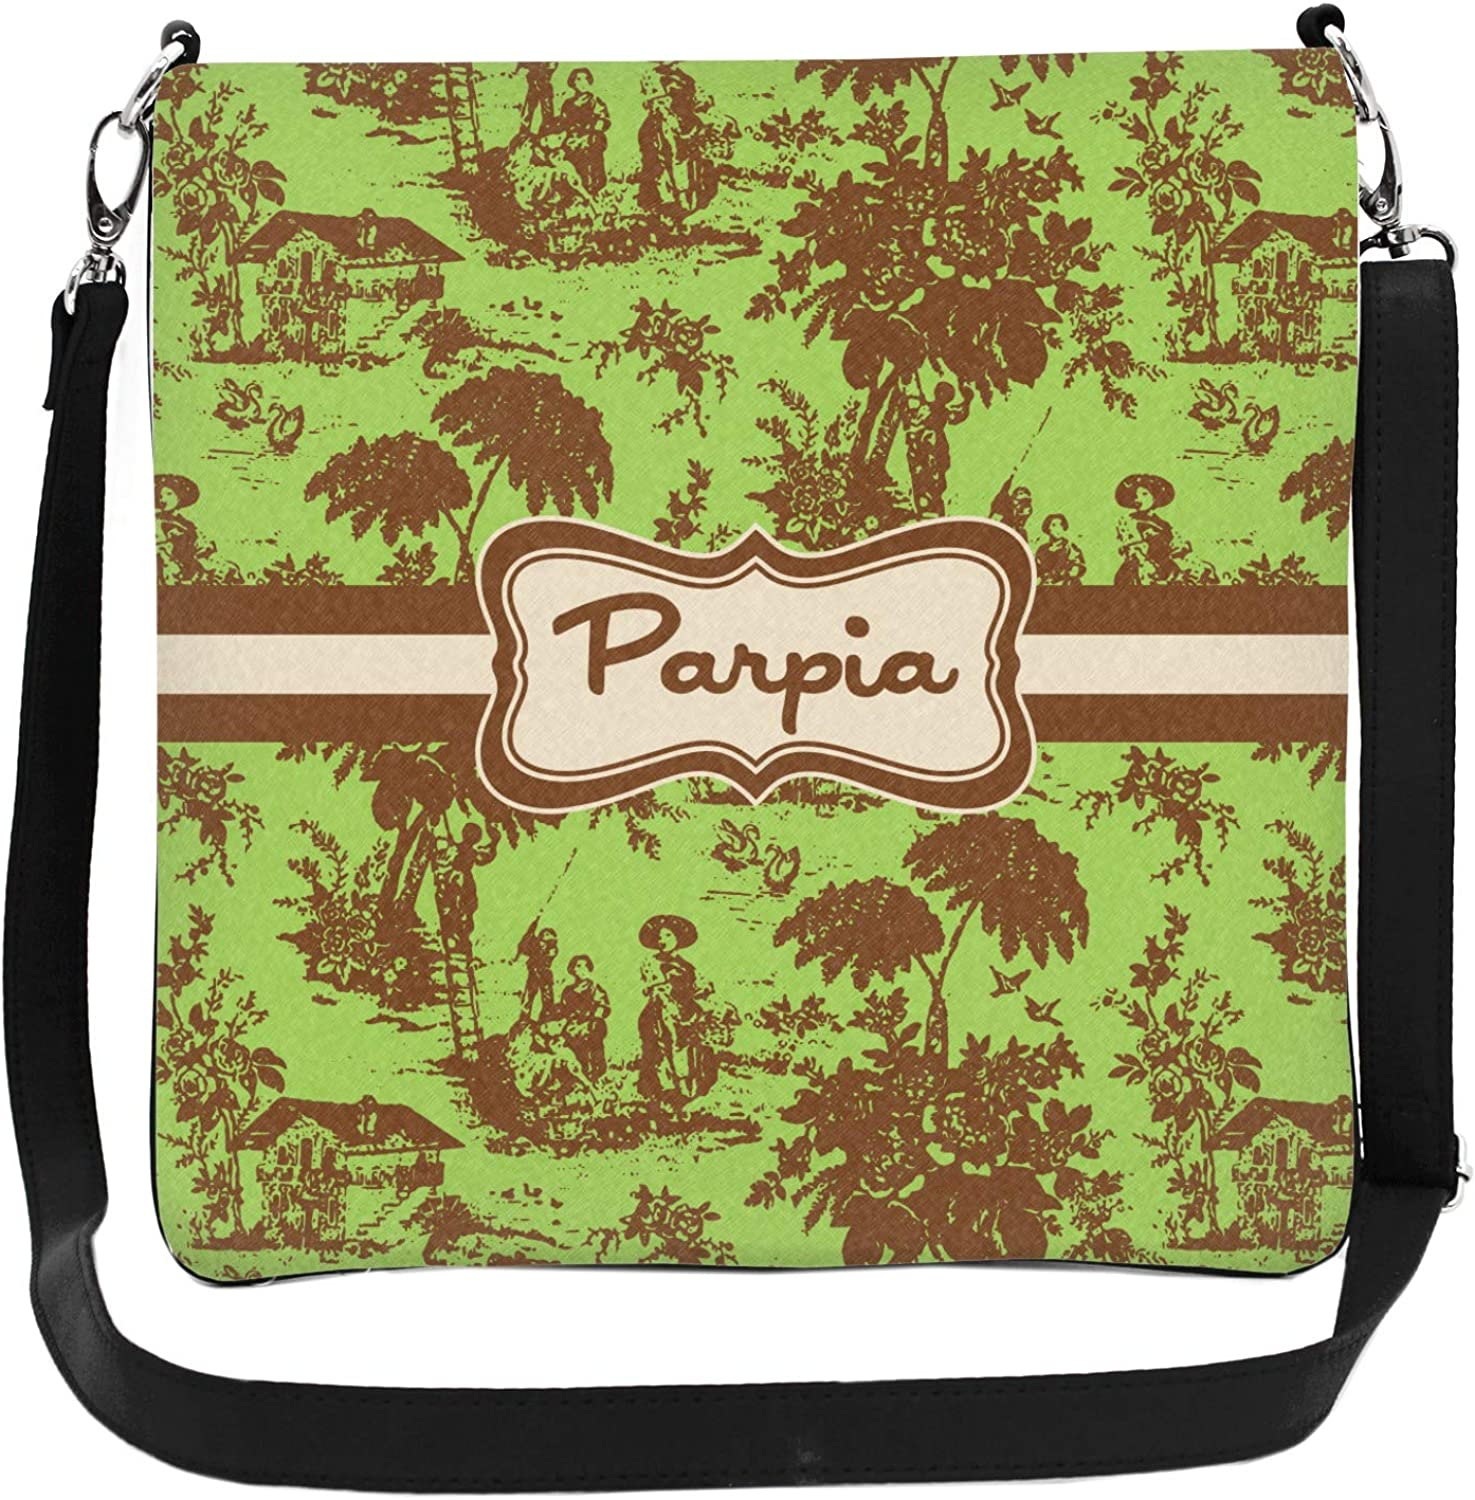 Green /& Brown Toile Cross Body Bag 2 Sizes Personalized